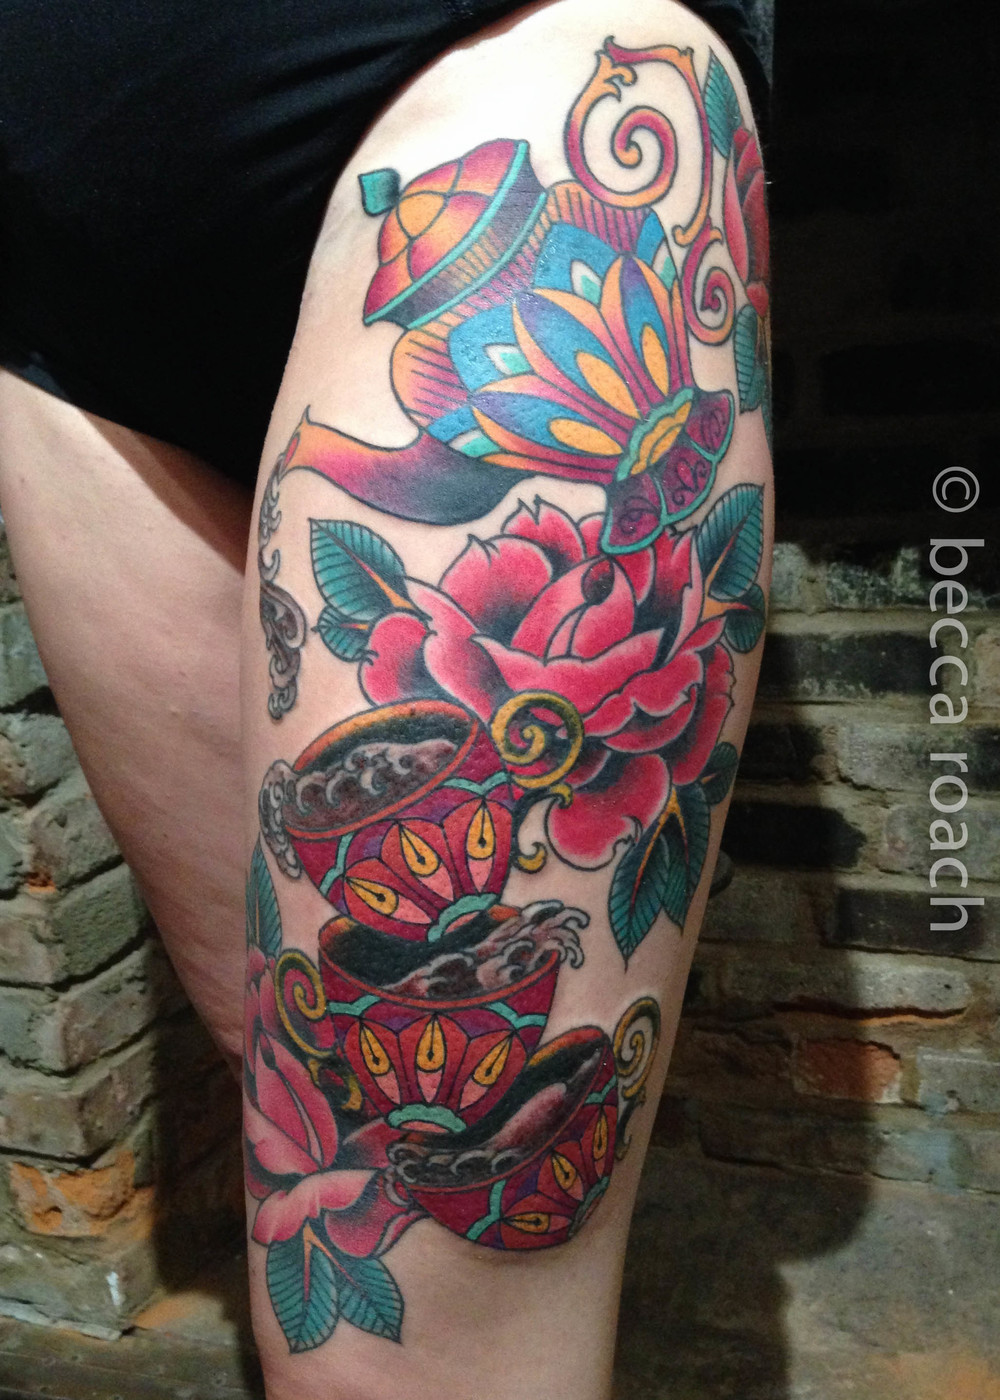 Becca Roach Color Thigh.jpg